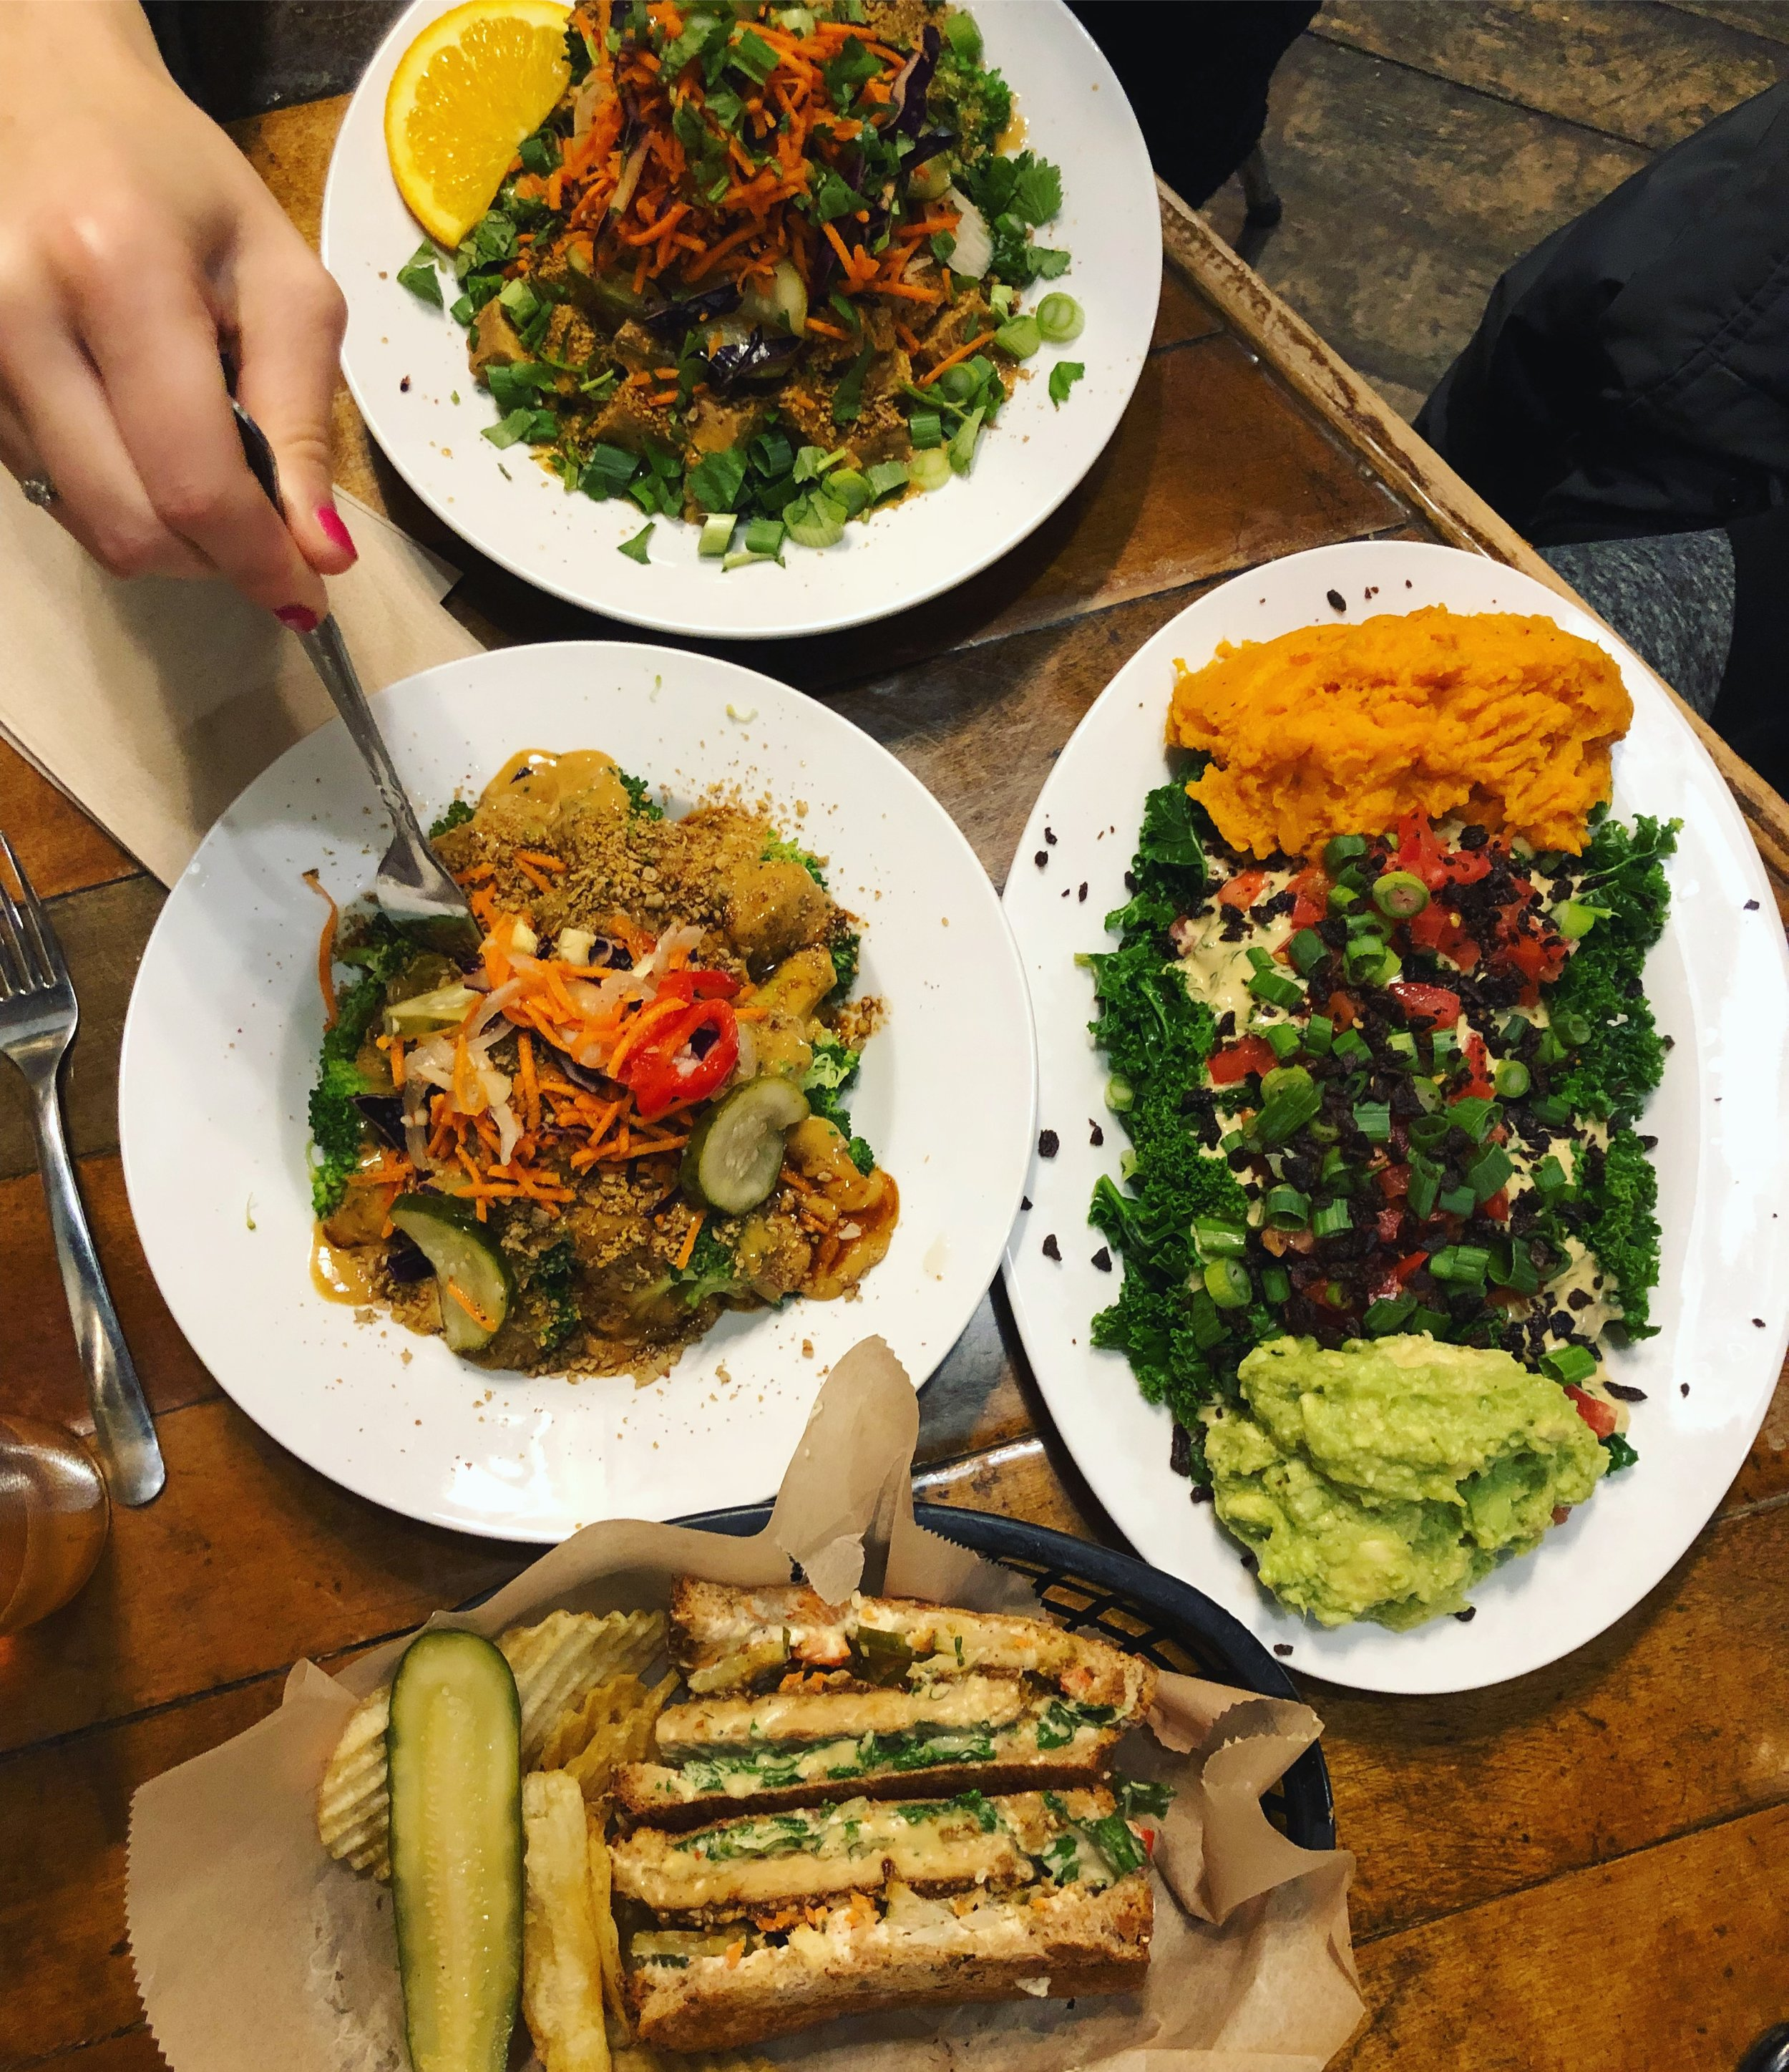 Brocc Bites, Food Truck Ruben, Kale Salad with Sweet Potato and Avo, and the Buddha-ful bowl